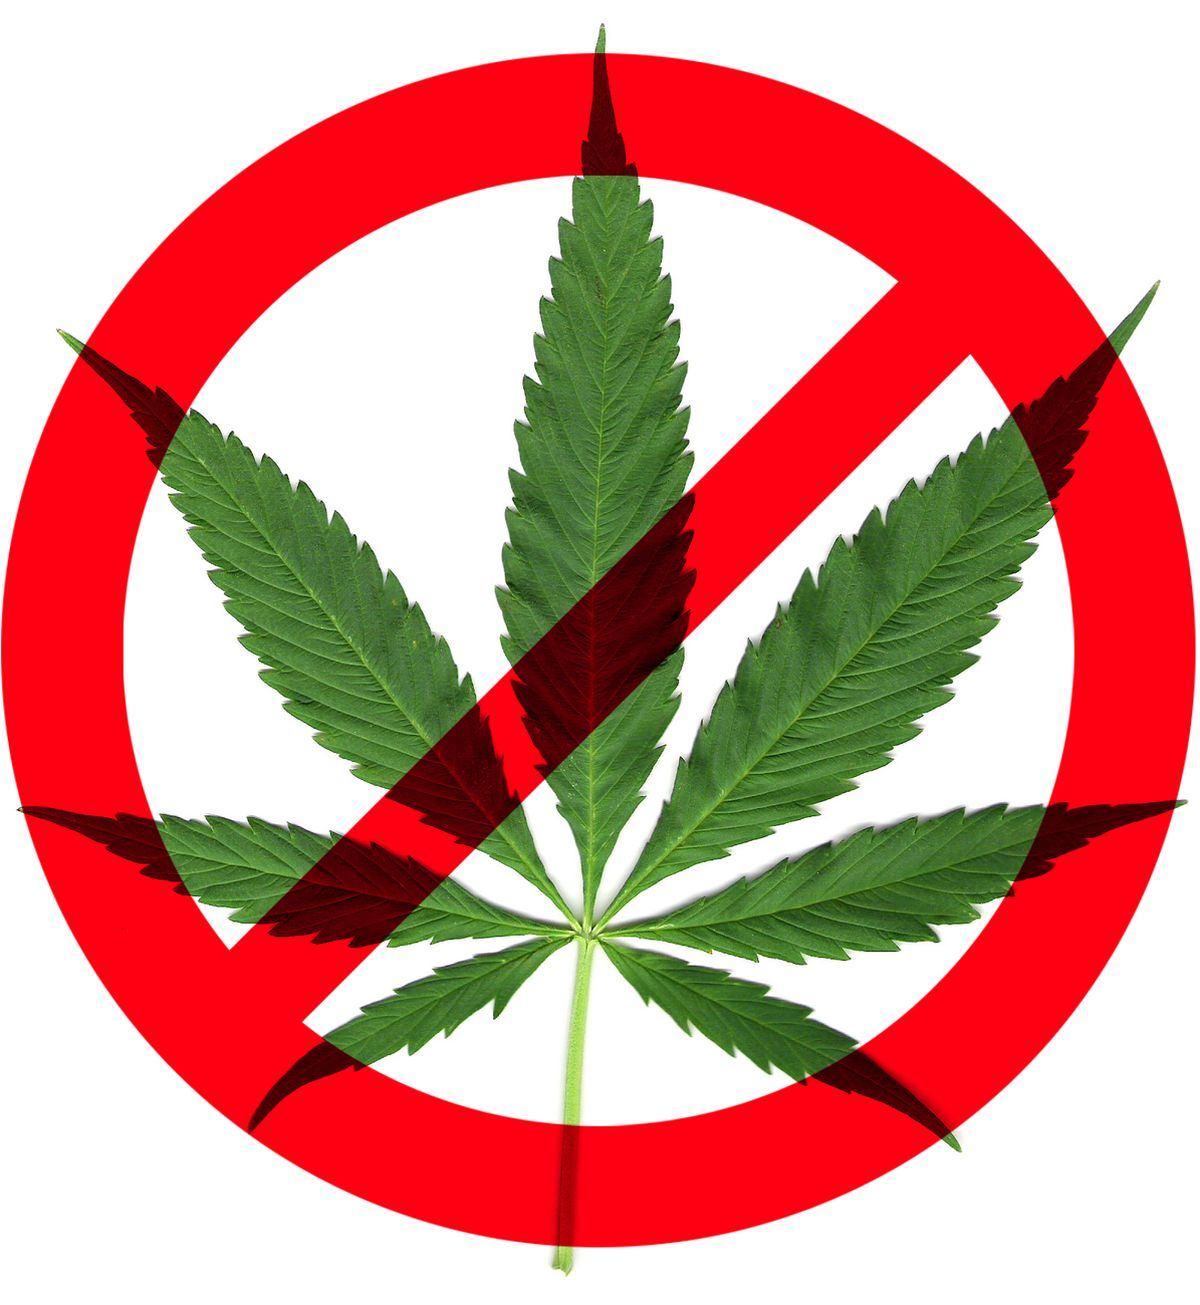 marijuana should be banned Marijuana is still illegal in the majority of states, so it has to remain a banned substance marijuana should be a banned substance but a year-long suspension or a six-month suspension or whatever for one positive test [administered by the ncaa] is.